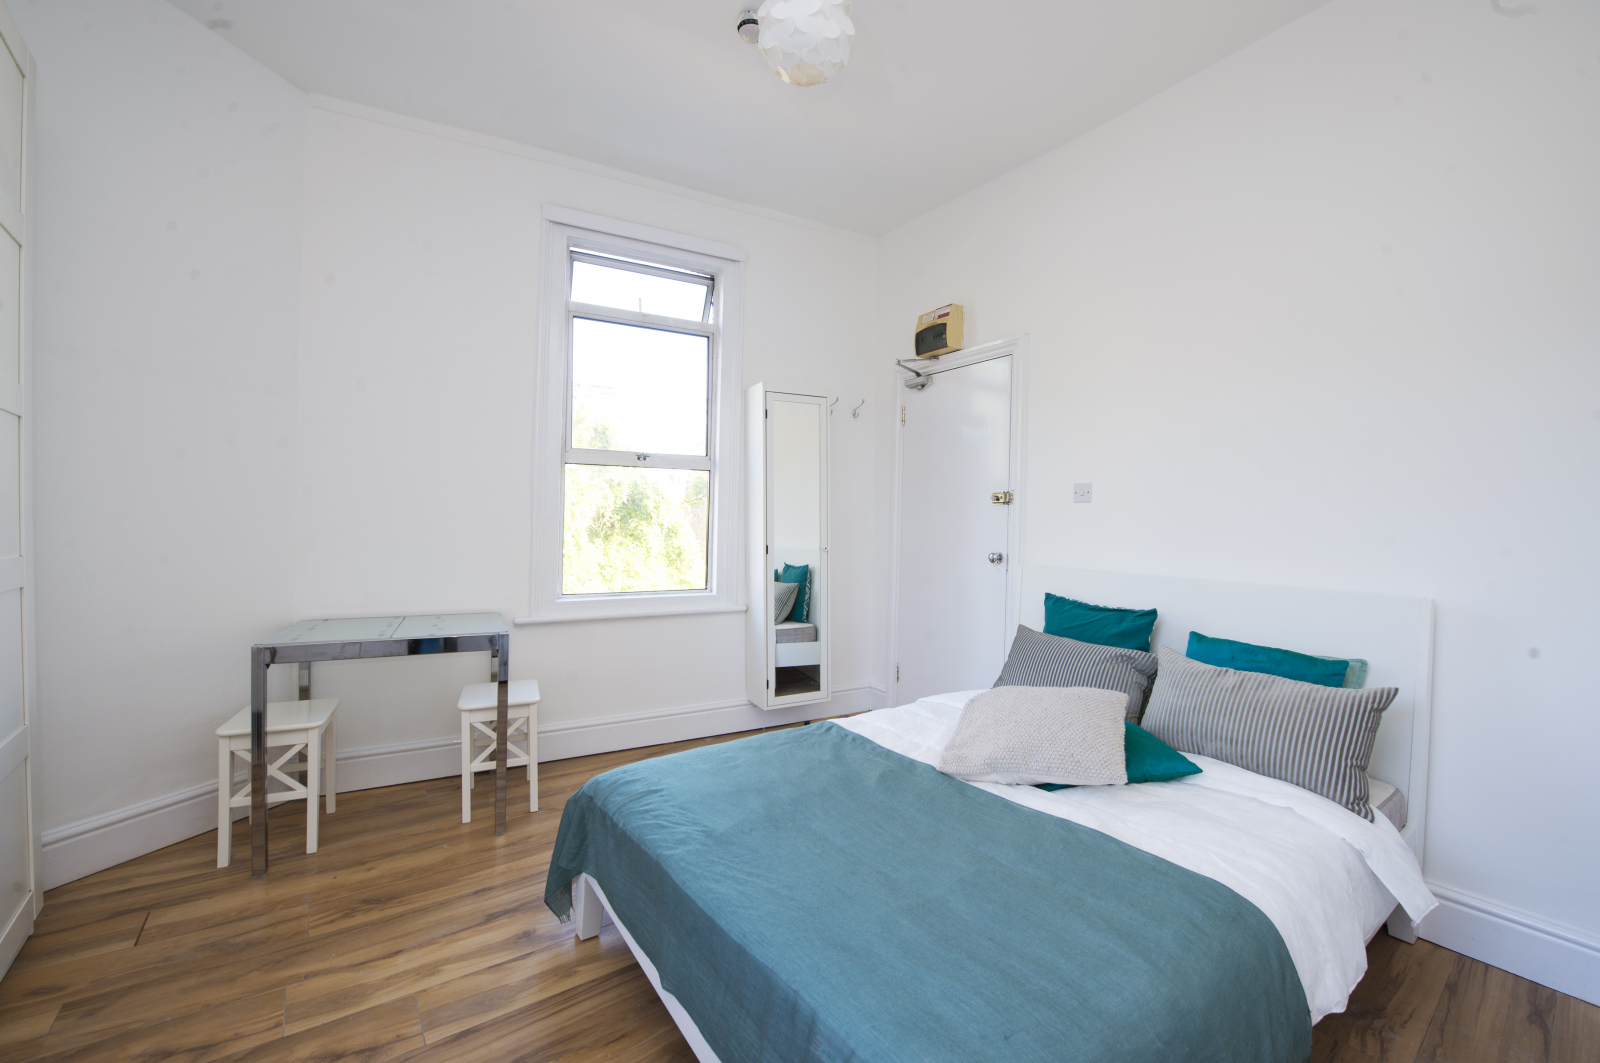 Studio flat to rent in Dalling road, Hammersmith, London, W6 0